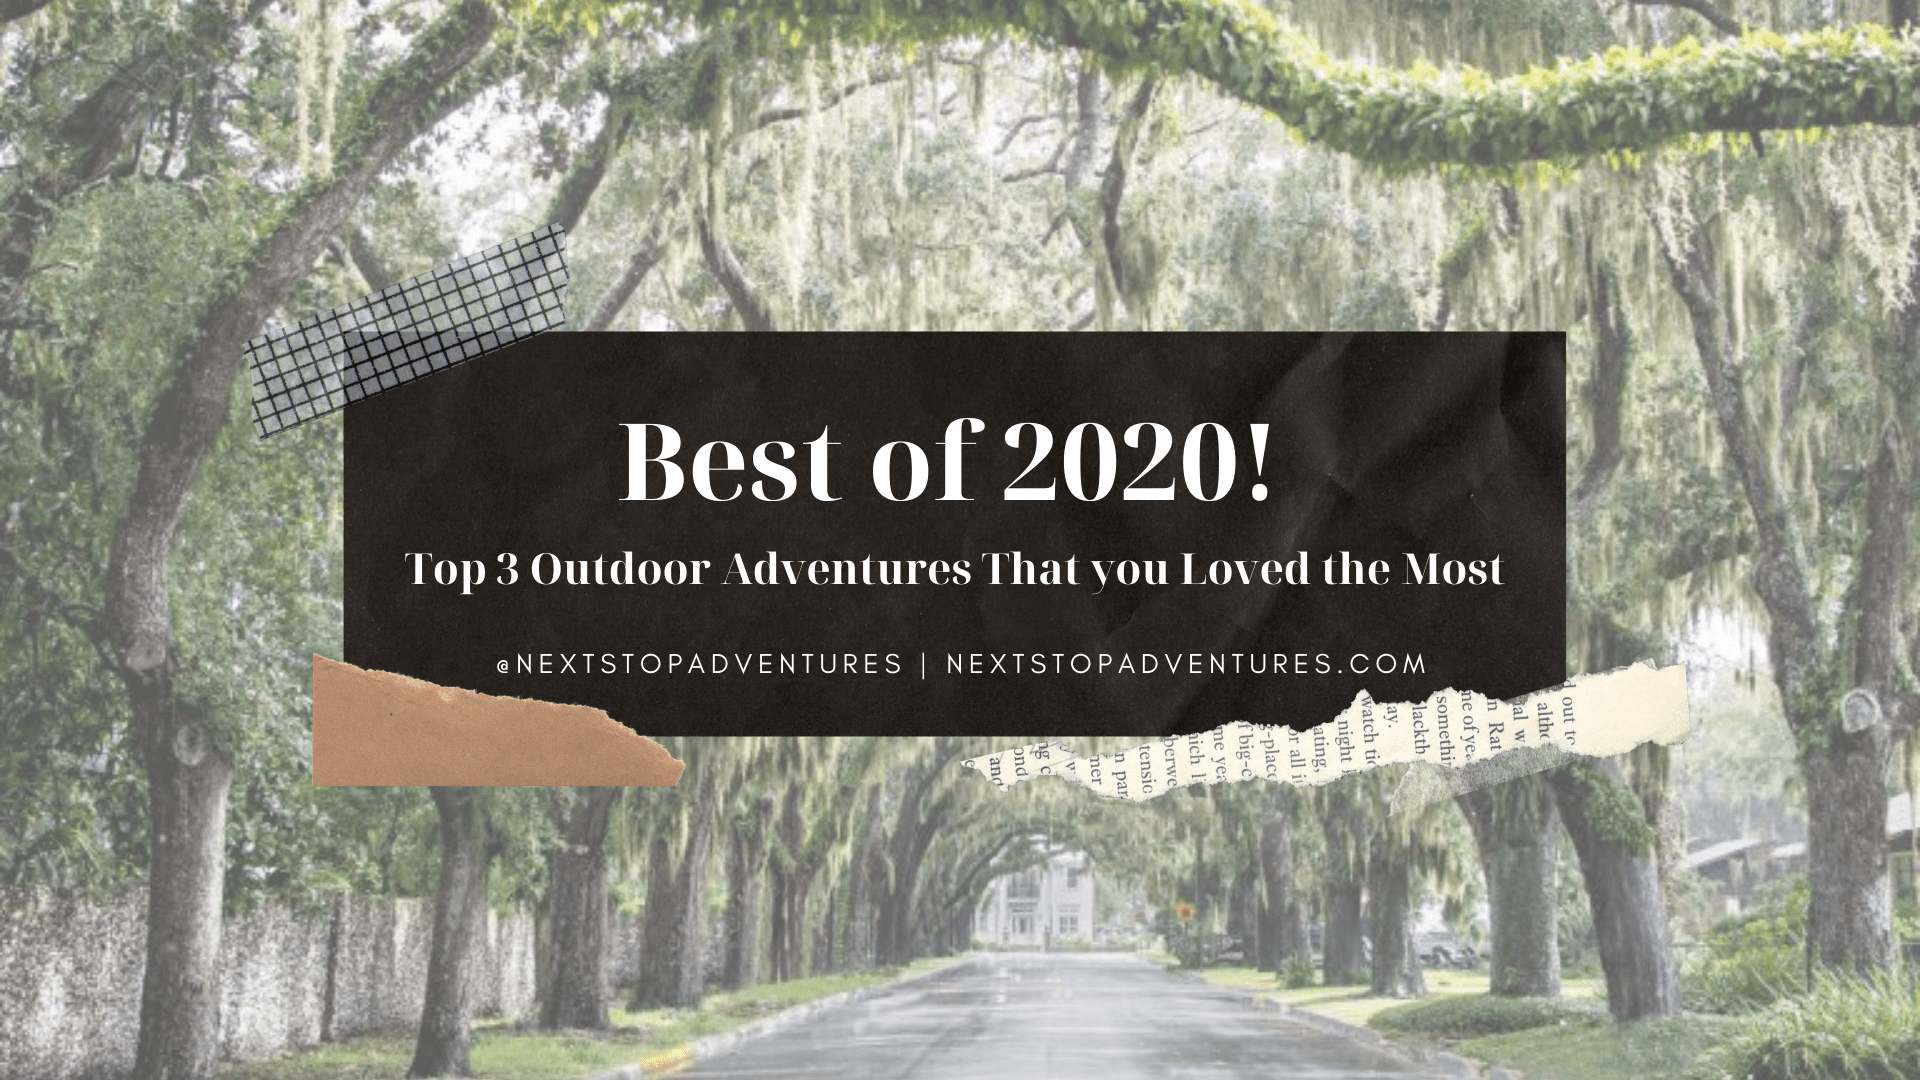 Top Outdoor Adventures of 2020 That You Loved the Most